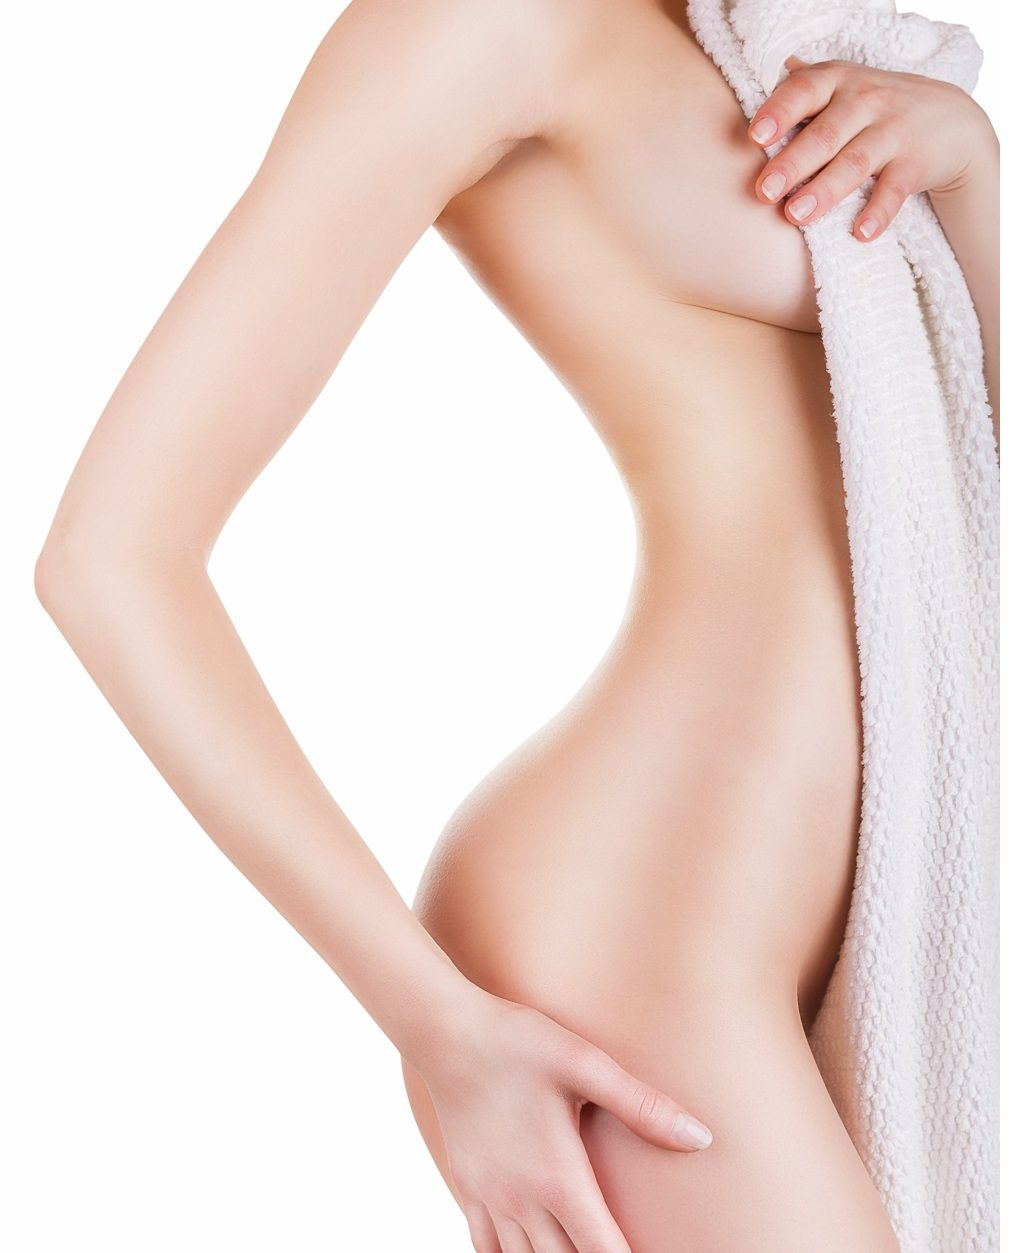 If youre considering liposuction to your love handles saddlebags if youre considering liposuction to your love handles saddlebags or abdomen familiarize yourself with the procedure then contact dr arturo valdez solutioingenieria Choice Image